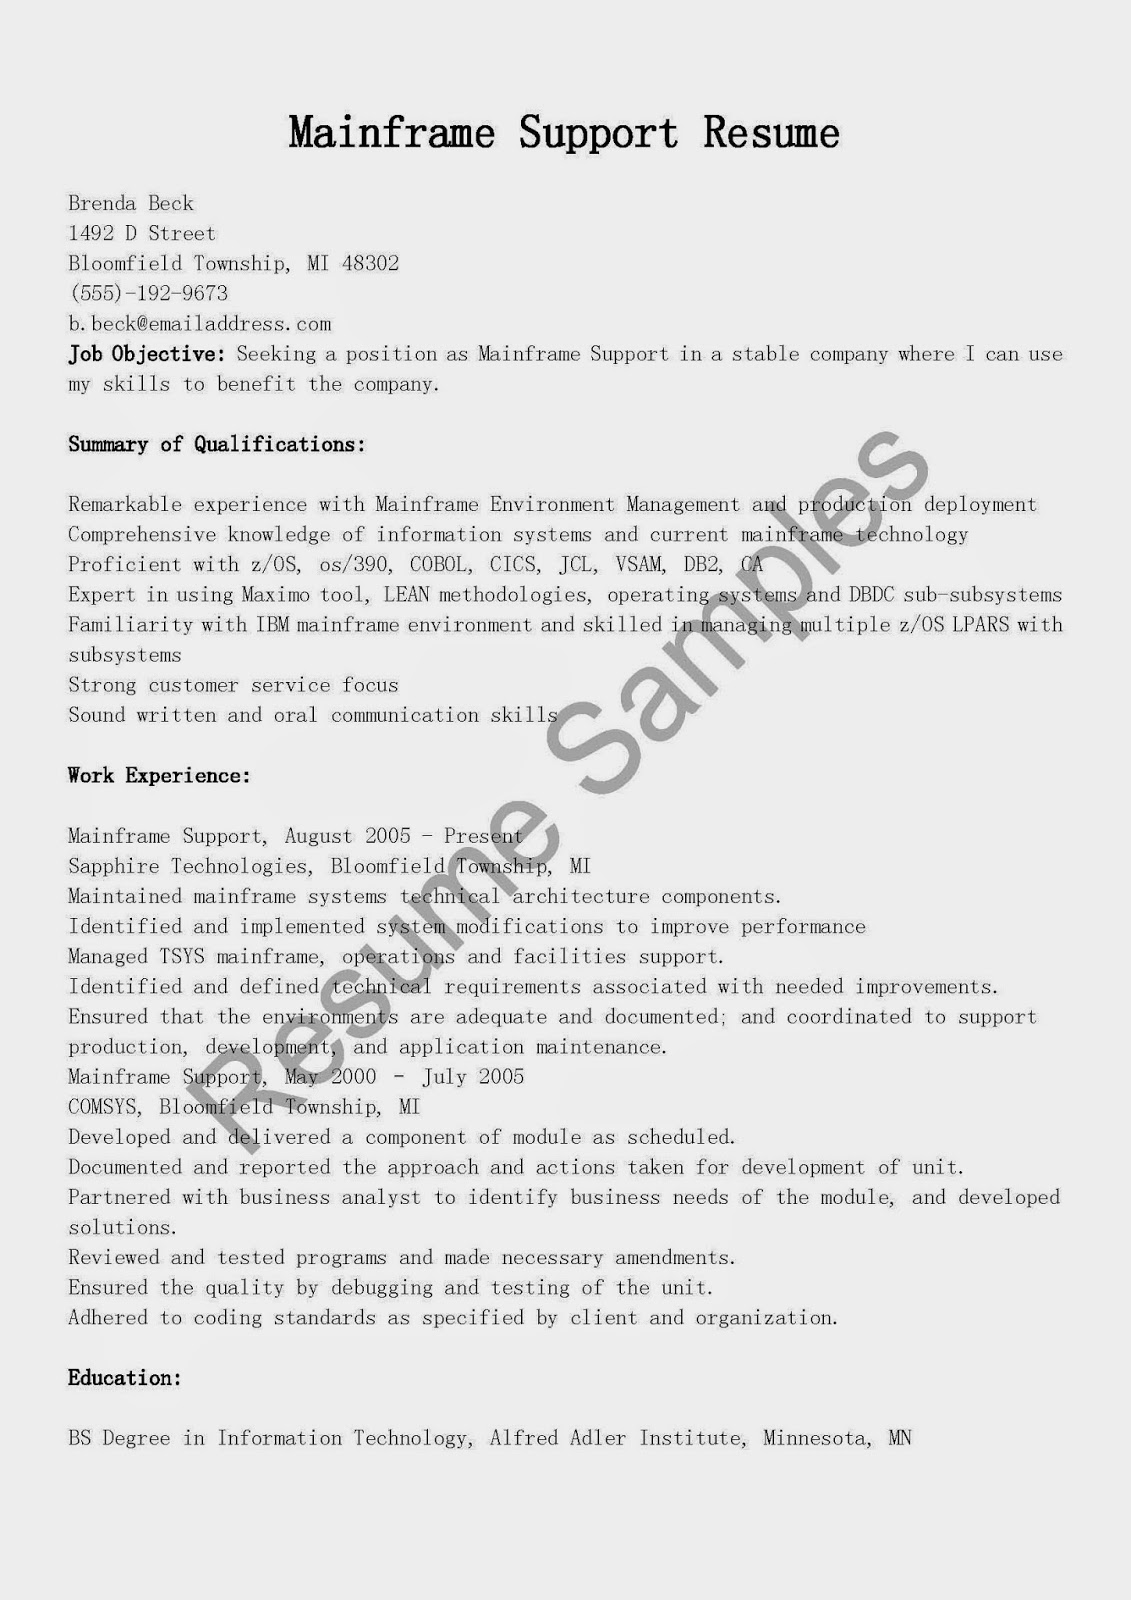 resume sles mainframe support resume sle